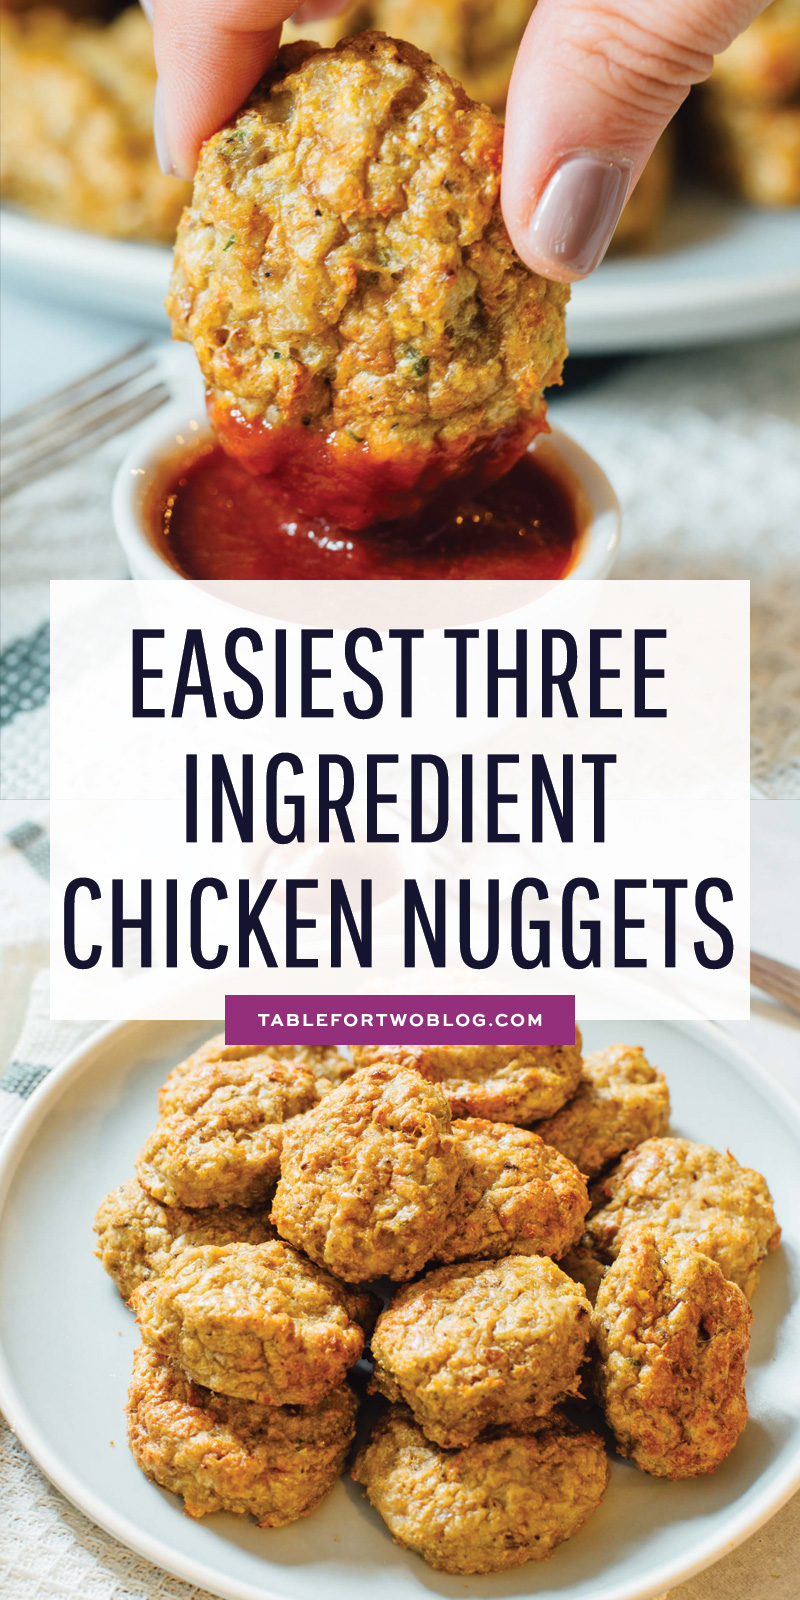 Three ingredients is all you'll need for the easiest three ingredient chicken nugget recipe EVER!! They are awesome for #mealprepping and they make quick weeknight dinners so easy and no stress! #chickenrecipes #chickenugget #mealprep #easymeal #mealpreppingrecipe #makeaheadmeal